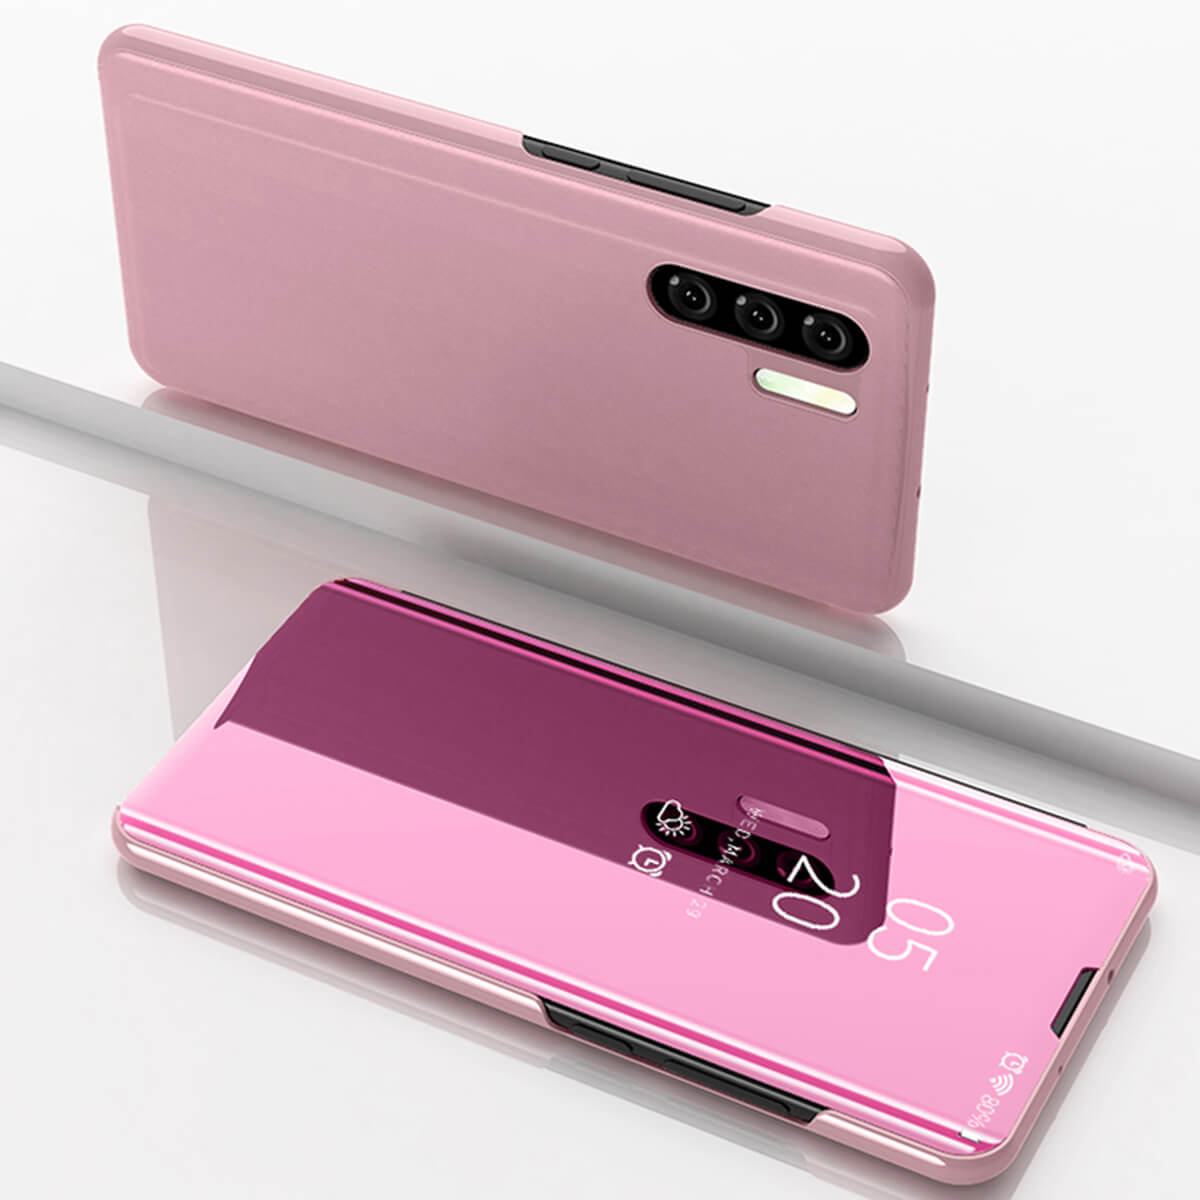 New-Huawei-P20-Lite-Mate-P30-Pro-Smart-View-Mirror-Leather-Flip-Stand-Case-Cover miniatura 36